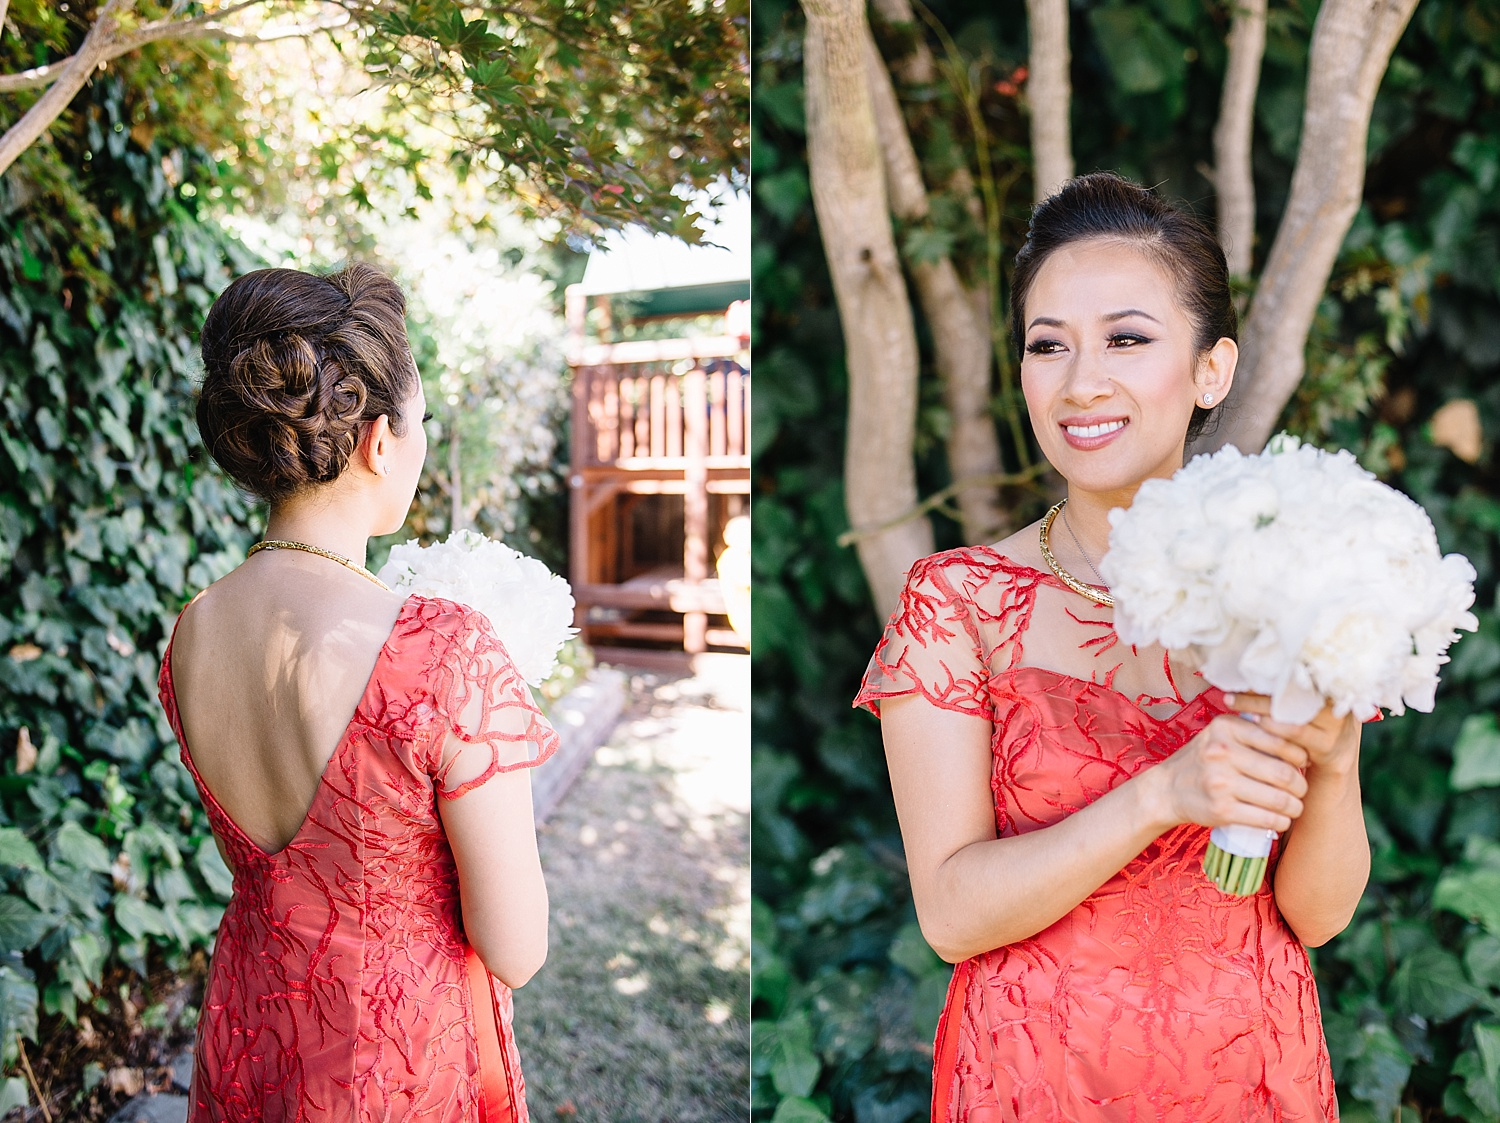 jennifer-jayn-photography-los-altos-wedding-vietnamese-tea-ceremony_0014.jpg